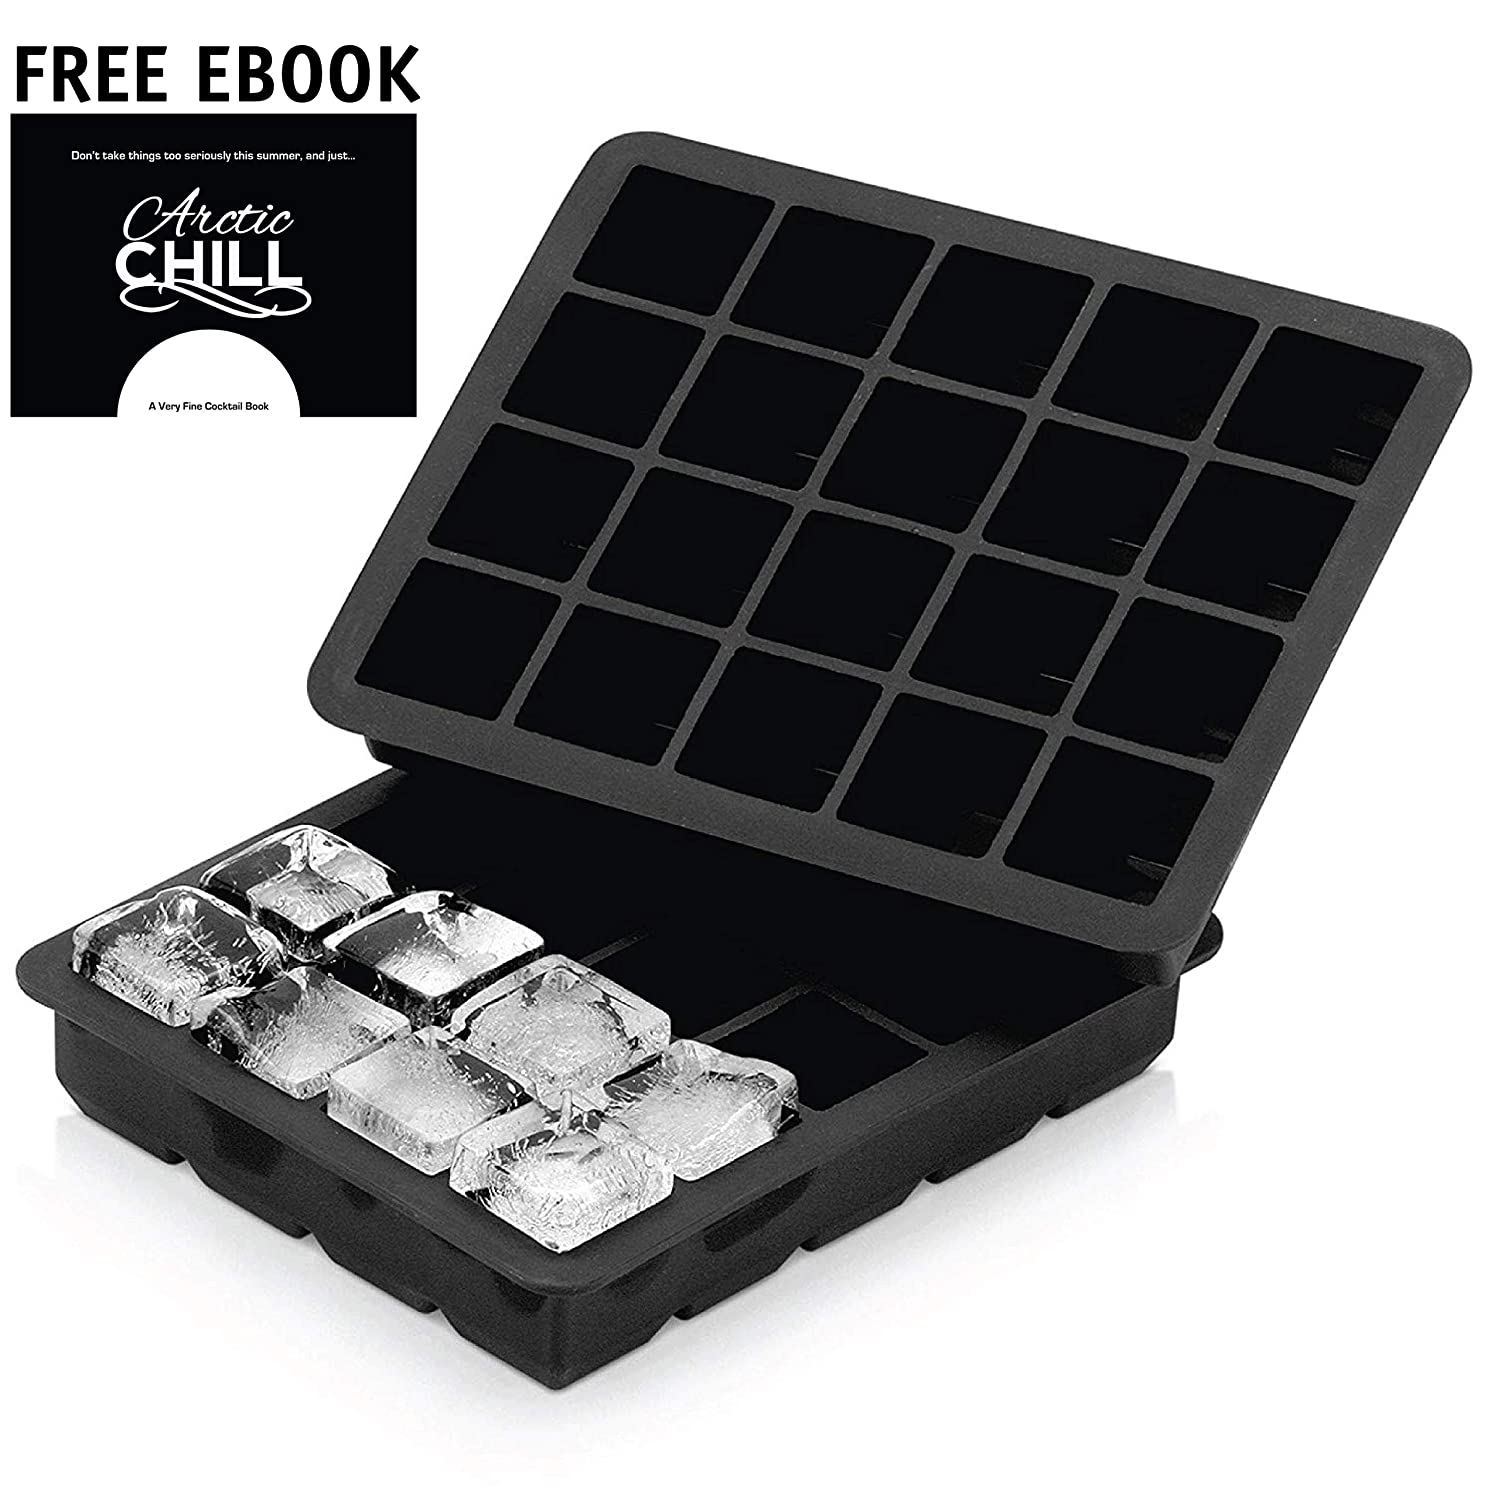 Arctic Chill 1 Inch Silicone Ice Cube Tray for Chilled Drinks, Cocktails & Whiskey, Dishwasher Safe, BPA Free, FDA Approved, Set of 2